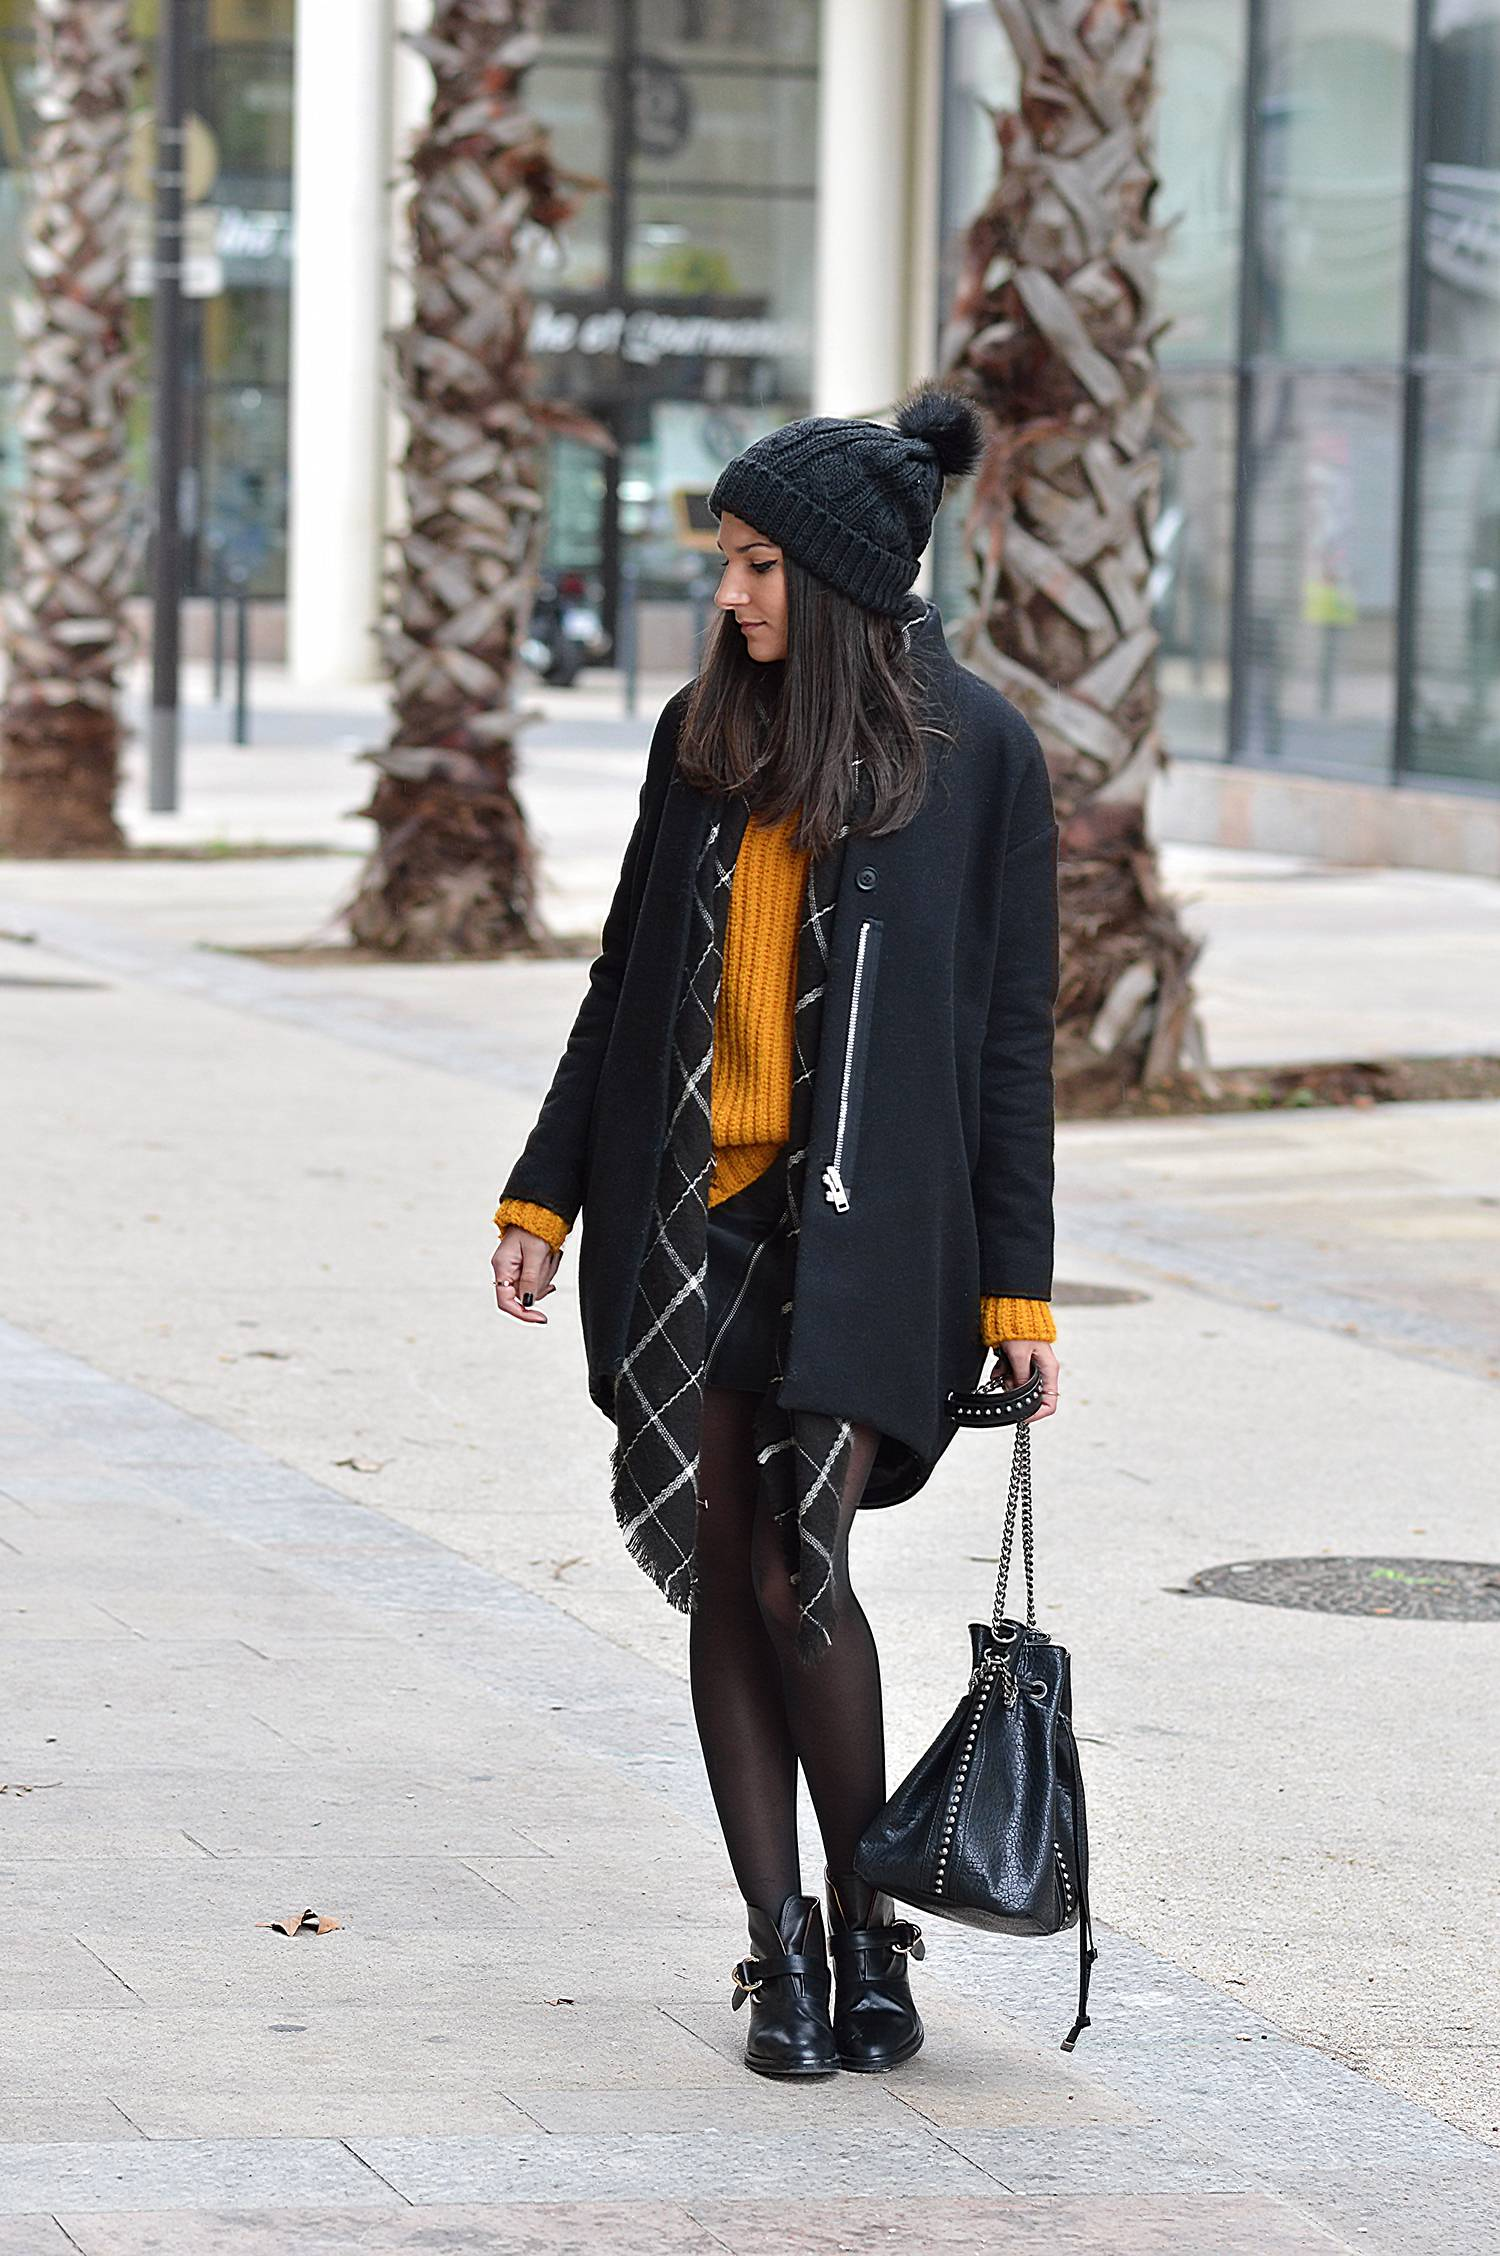 Dare to wear mustard yellow this winter! Federica L. shows how to wear the look, pairing a mustard knit sweater with a simple skirt and overcoat. The knitwear accessories are also a must for a classic winter style. Coat/Boots: & Other Stories, Sweater/Skirt/Hat: Mango.